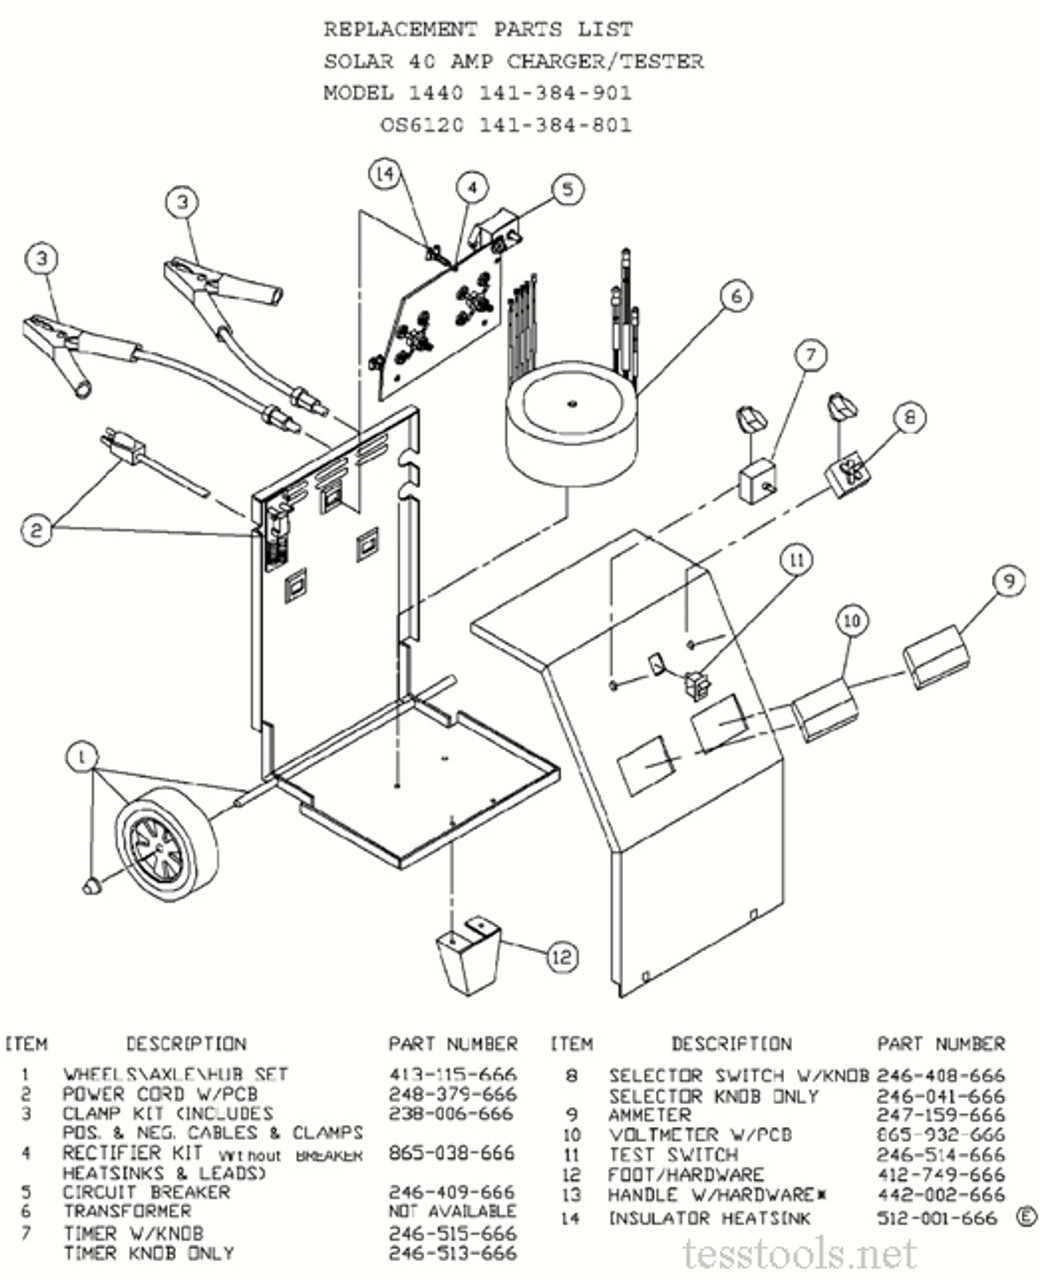 Clore/Solar/Century OS6120 Battery Charger ,Part List,Wiring Diagram, Schematic (141-384-801)Tess Tools